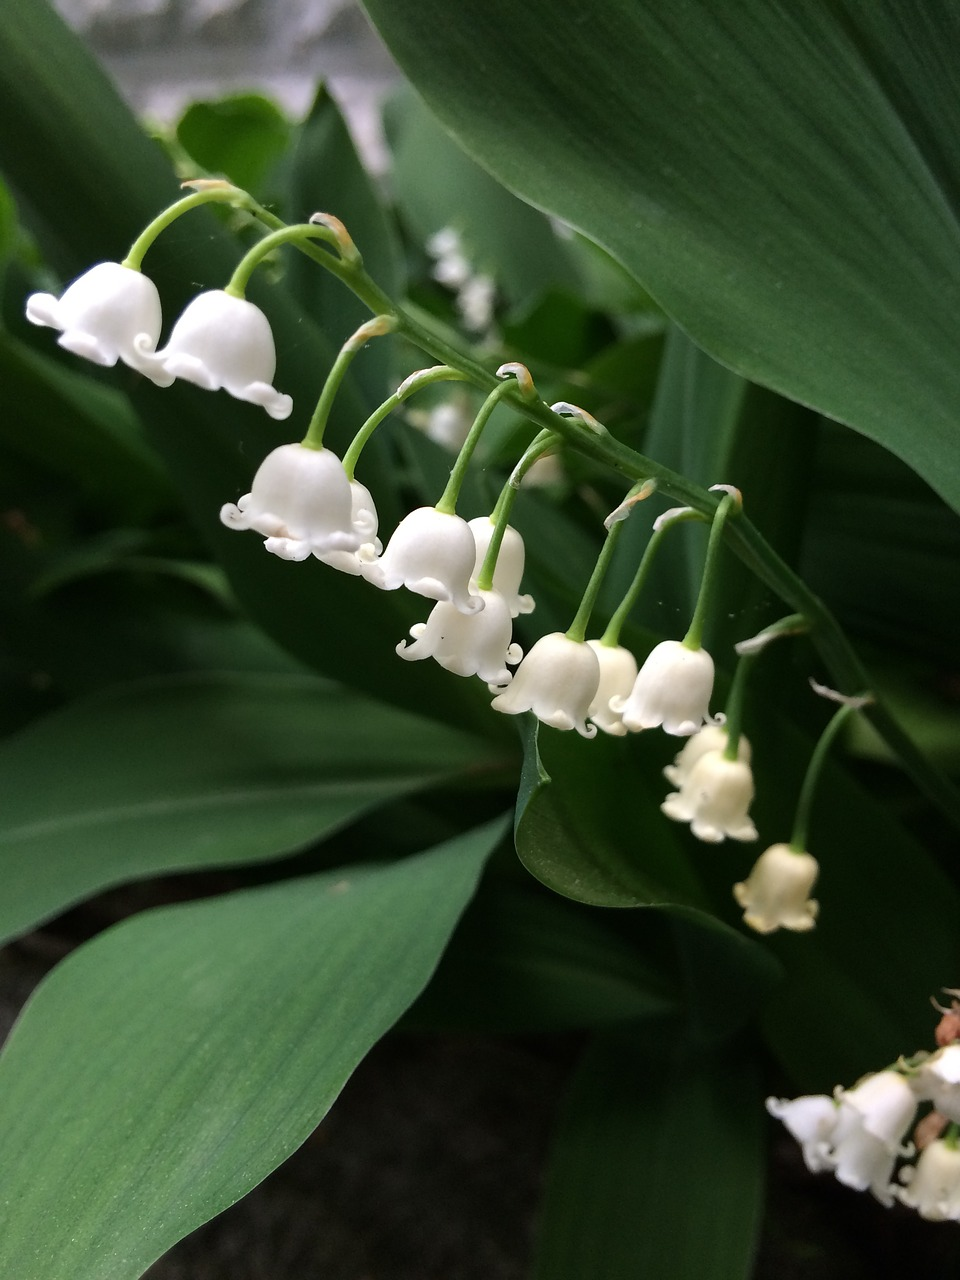 Comment Planter Du Muguet la tradition du muguet au 1er mai : pourquoi s'en offre t-on ?